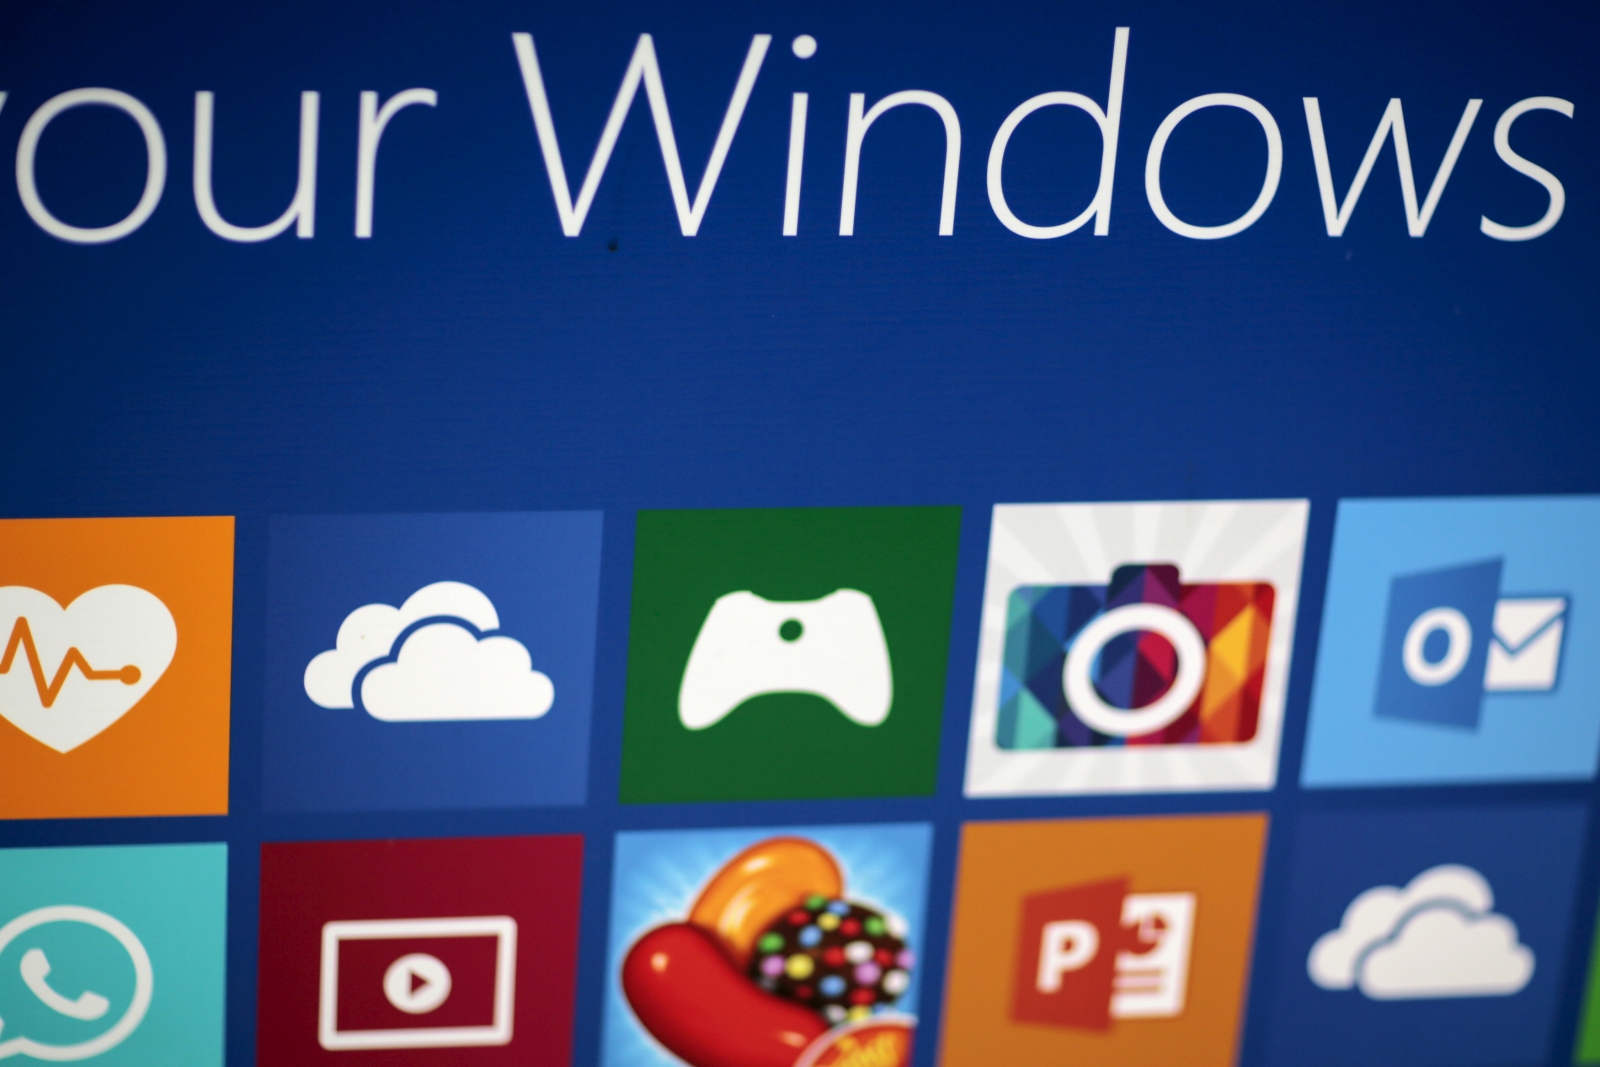 Microsoft's Windows Store appears to be flooded pirate streaming apps